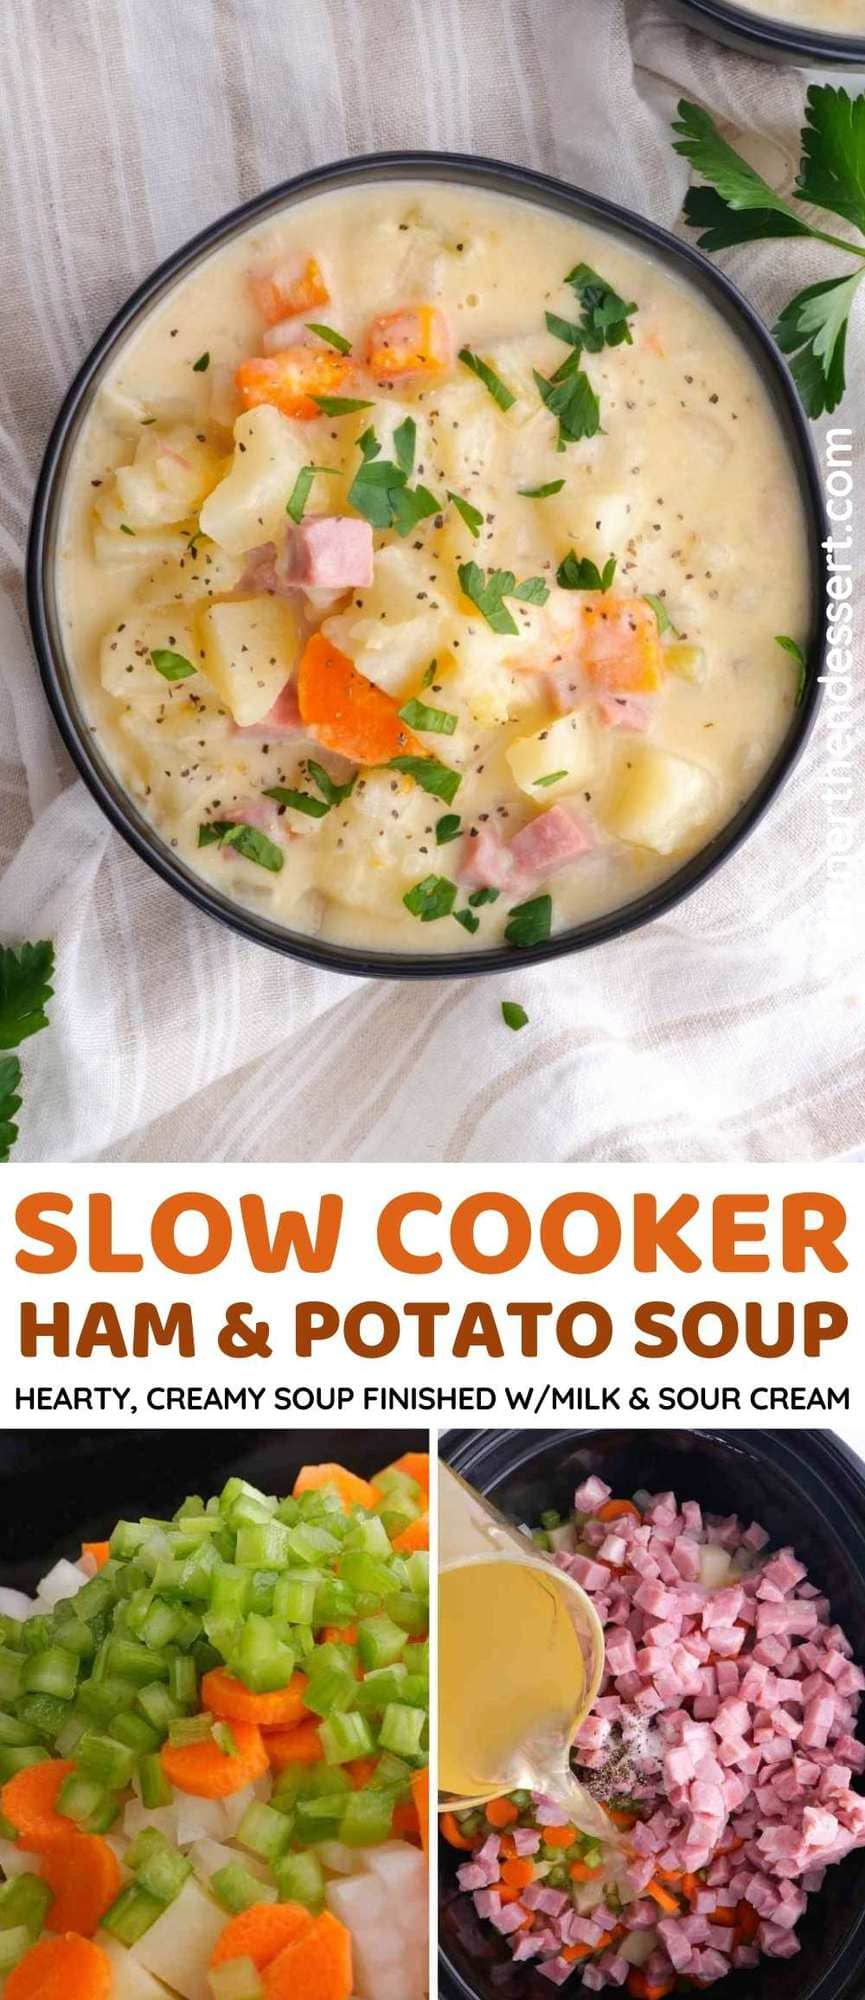 Slow Cooker Ham and Potato Soup Collage